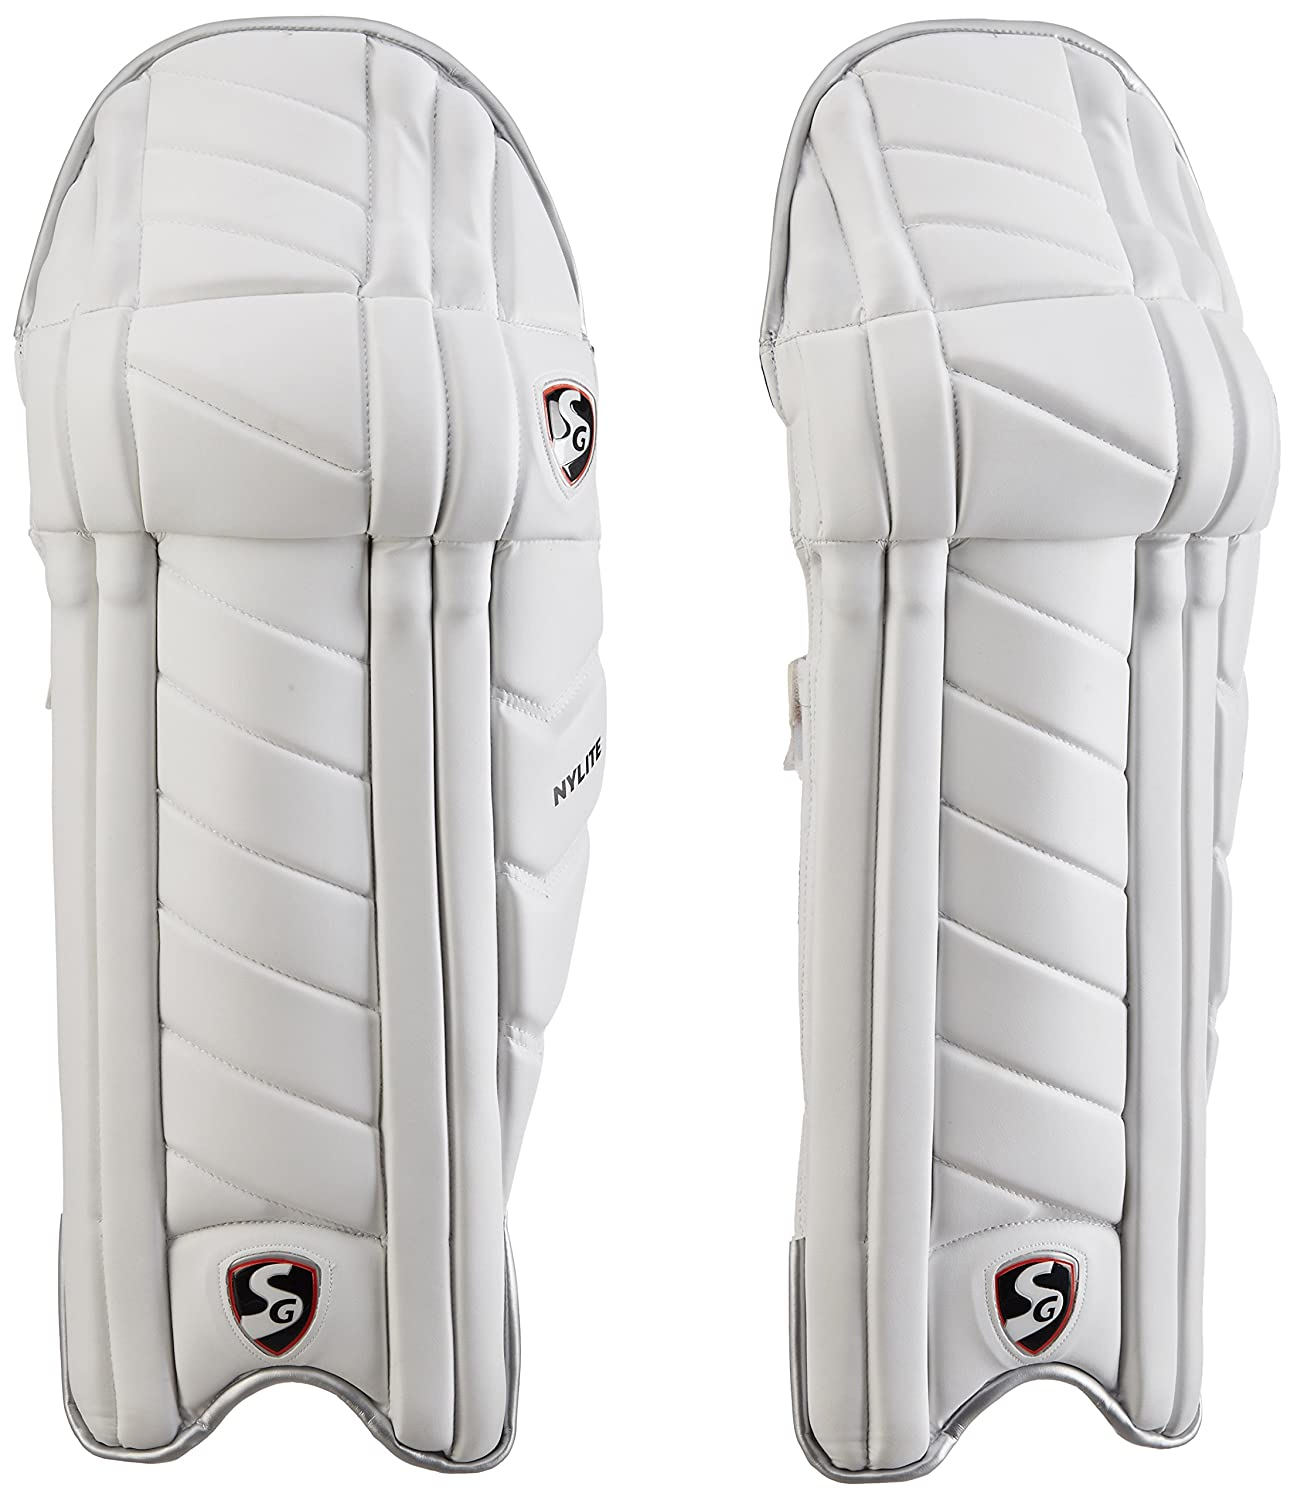 SG Nylite Batting Leg-Guard